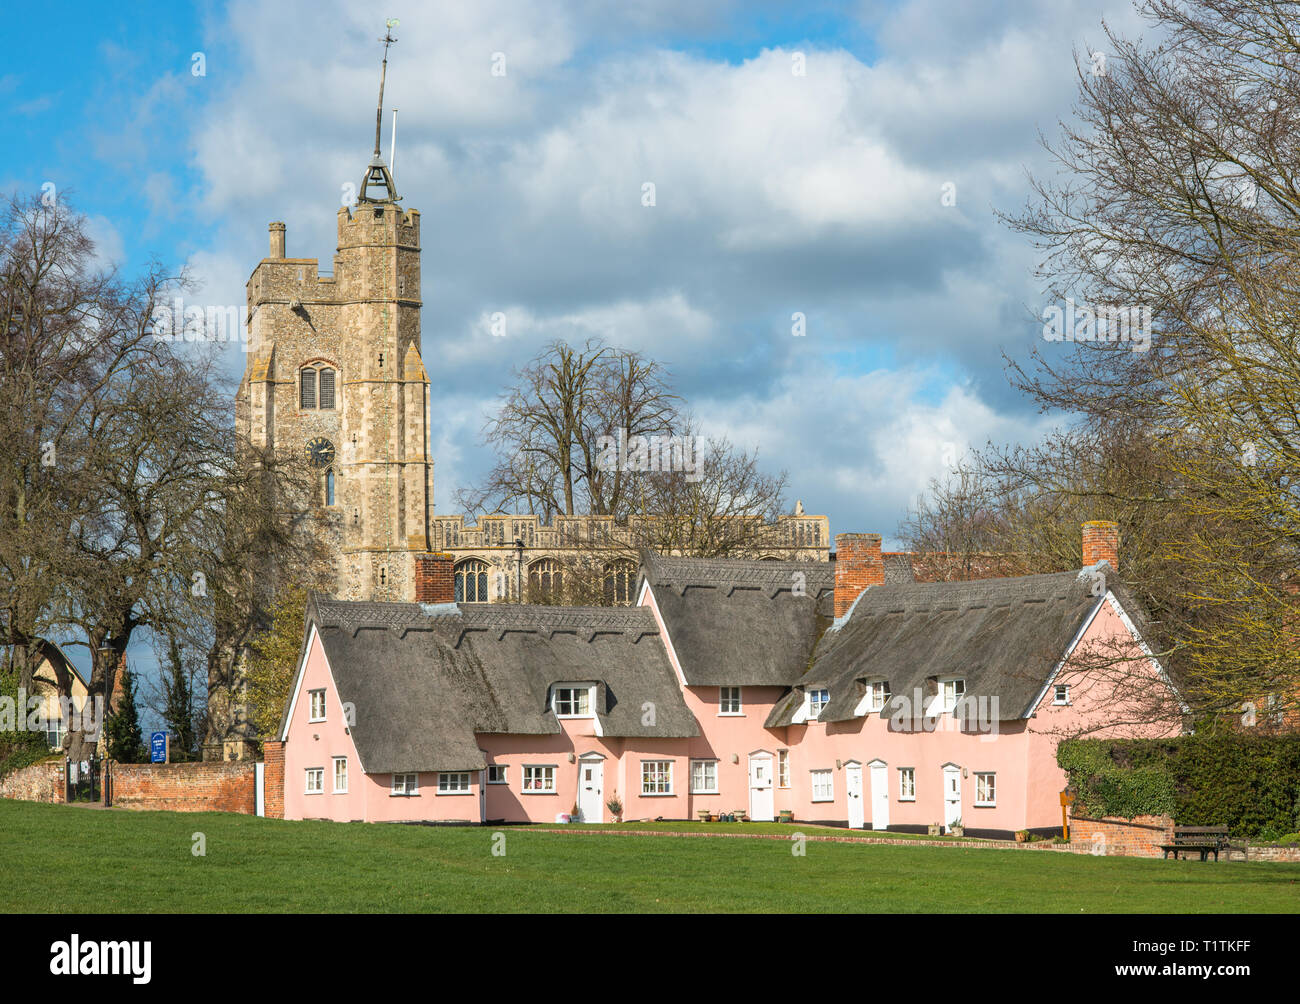 Thatched cottage painted in Suffolk pink with St. Mary the Virgin's Church on the village green. Cavendish, Suffolk, East Anglia, UK. - Stock Image